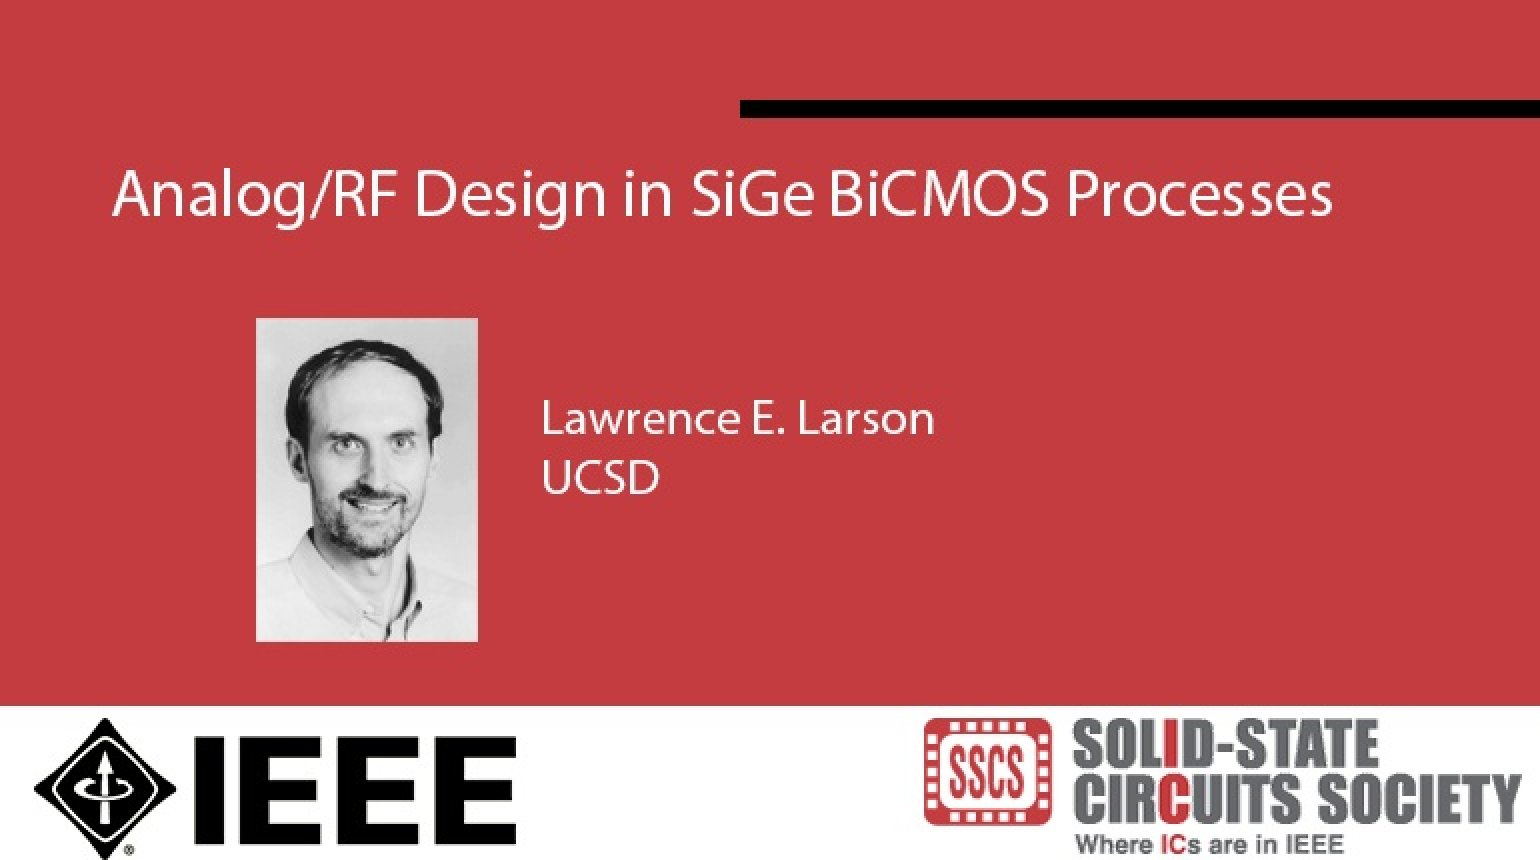 Analog/RF Design in SiGe BiCMOS Processes Video